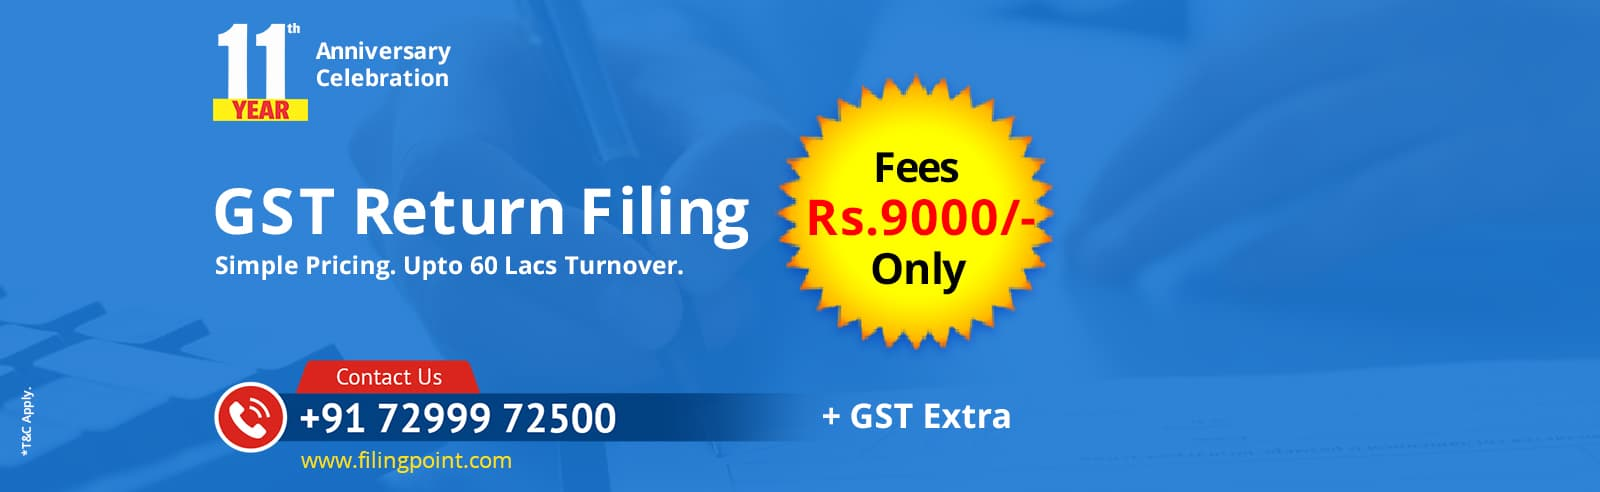 GST Filing Services Near Me Chennai Alwarpet Third Street Alwarpet Alwarpet